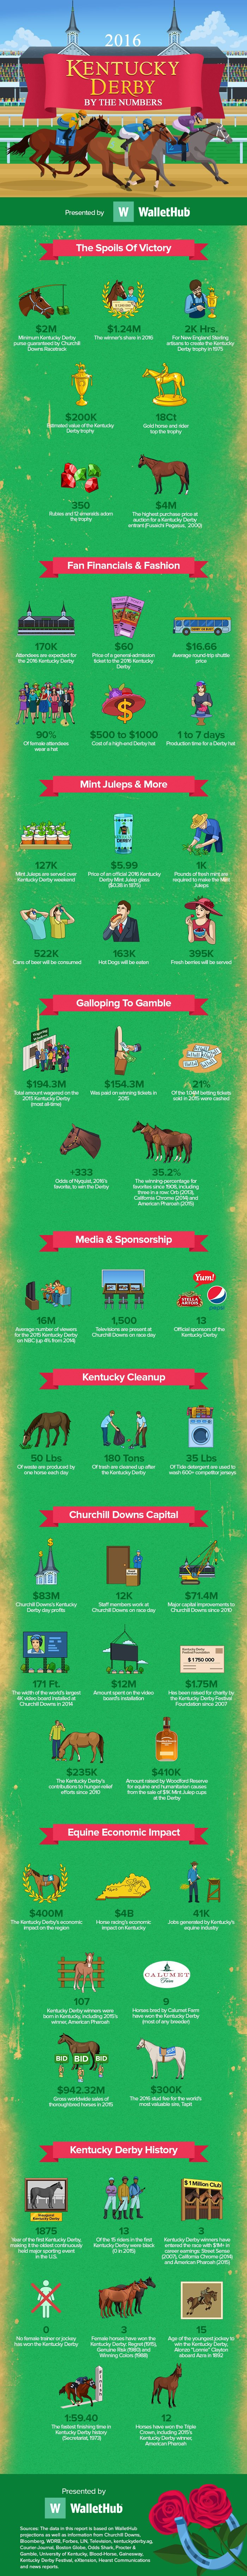 2016-Kentucky-Derby-By-The-Numbers-v5_2